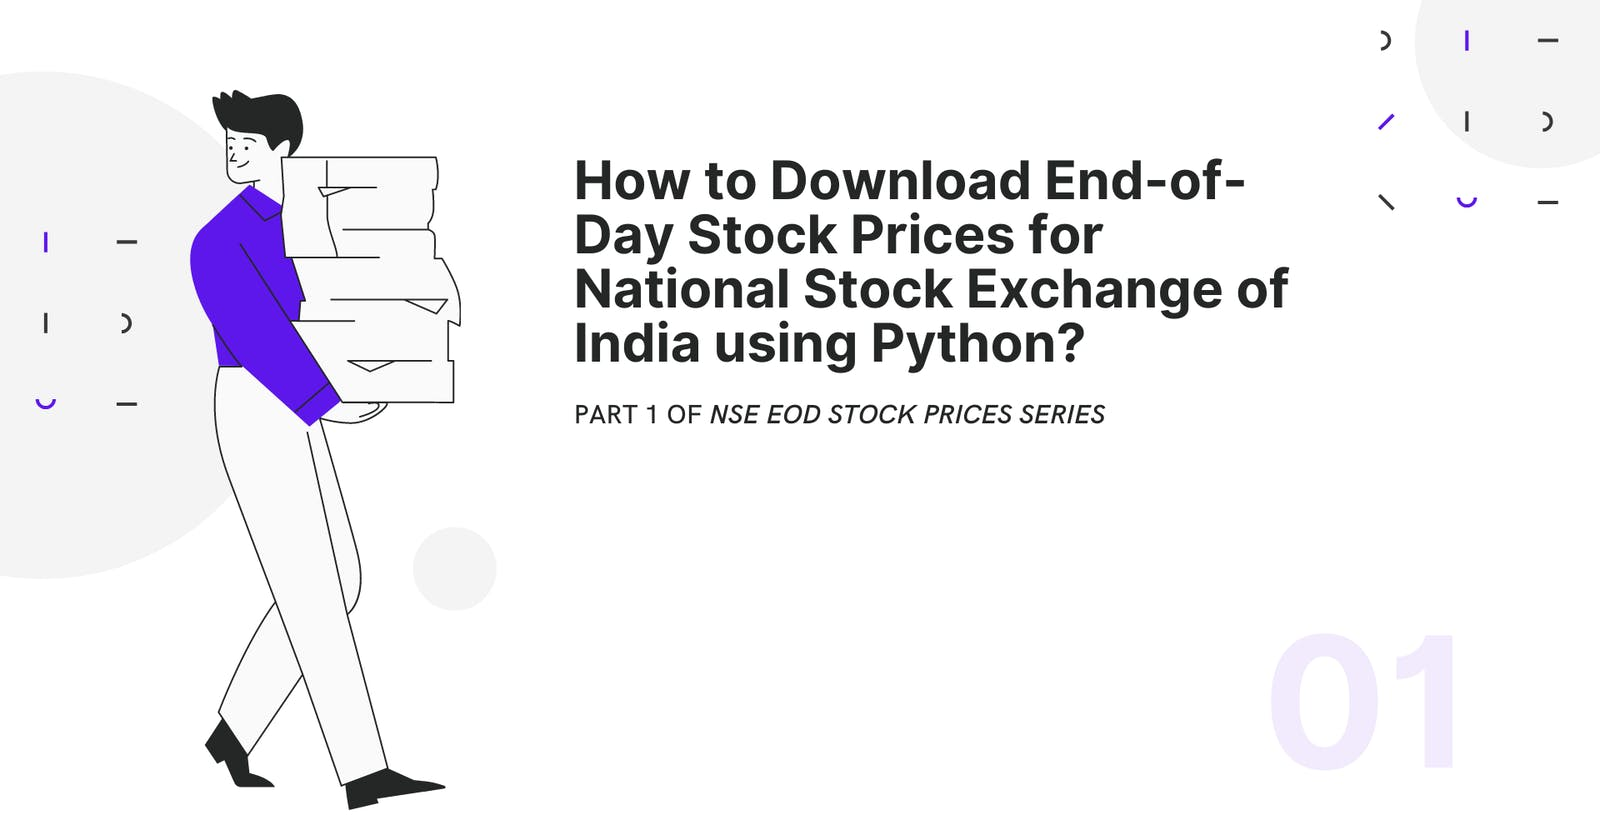 How to Download End-of-Day Stock Prices for the National Stock Exchange of India using Python?